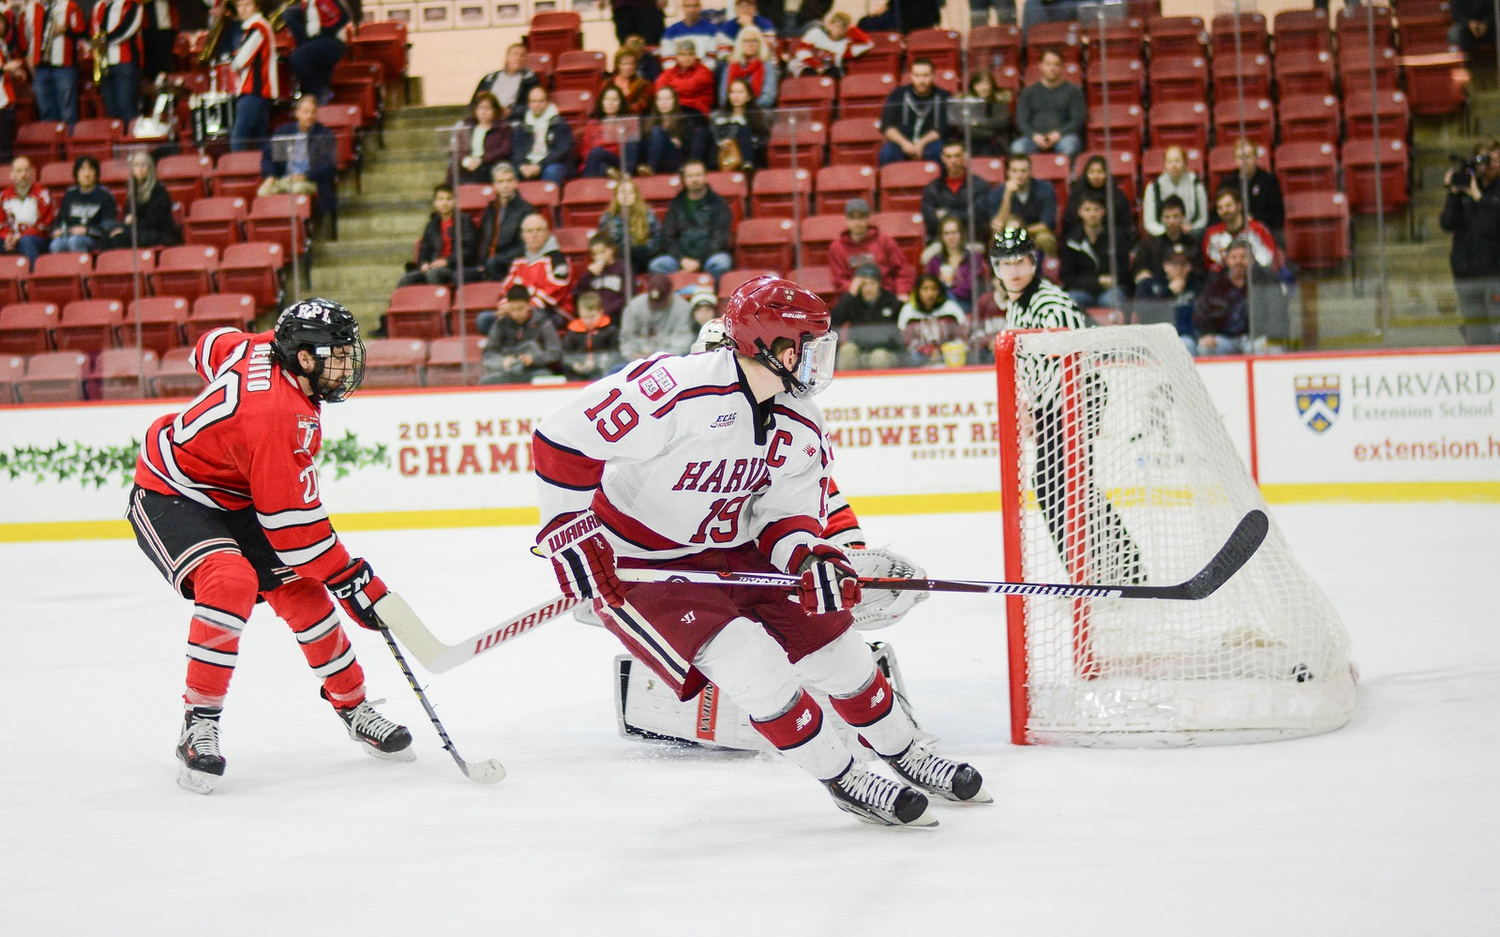 March 12: Vesey's final career goal at the Bright Center pushed the Crimson's lead to 6-2 over RPI in Game 2 of the ECAC Quarterfinals, helping Harvard punch its ticket to Lake Placid.